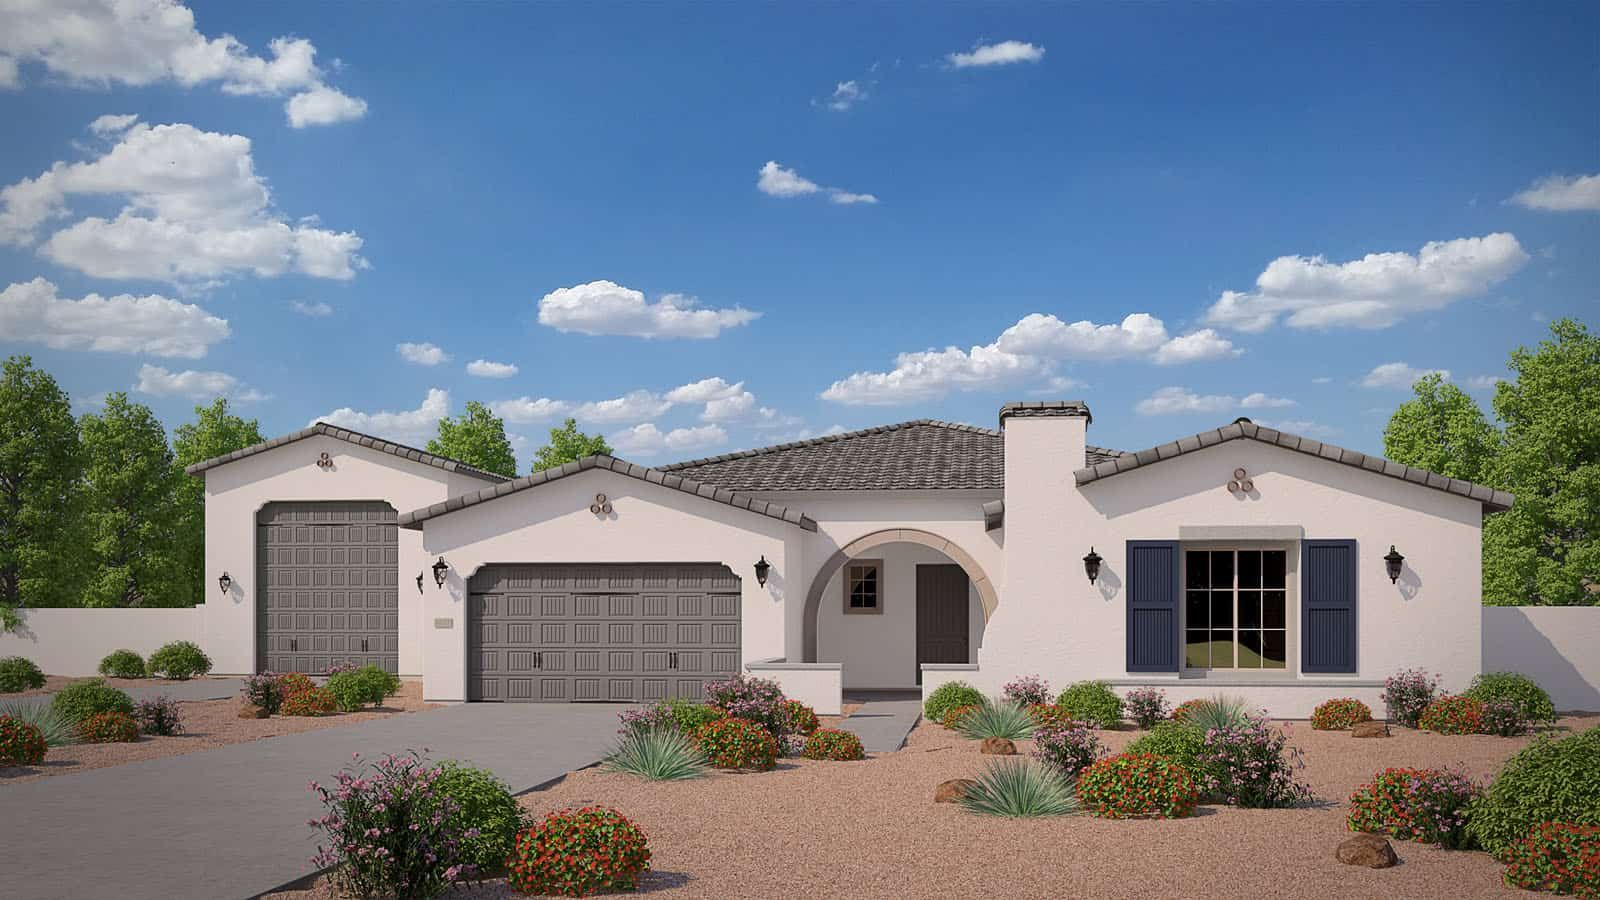 MH-residence-Spur-Cross-New-5571-A-L:Elevation A